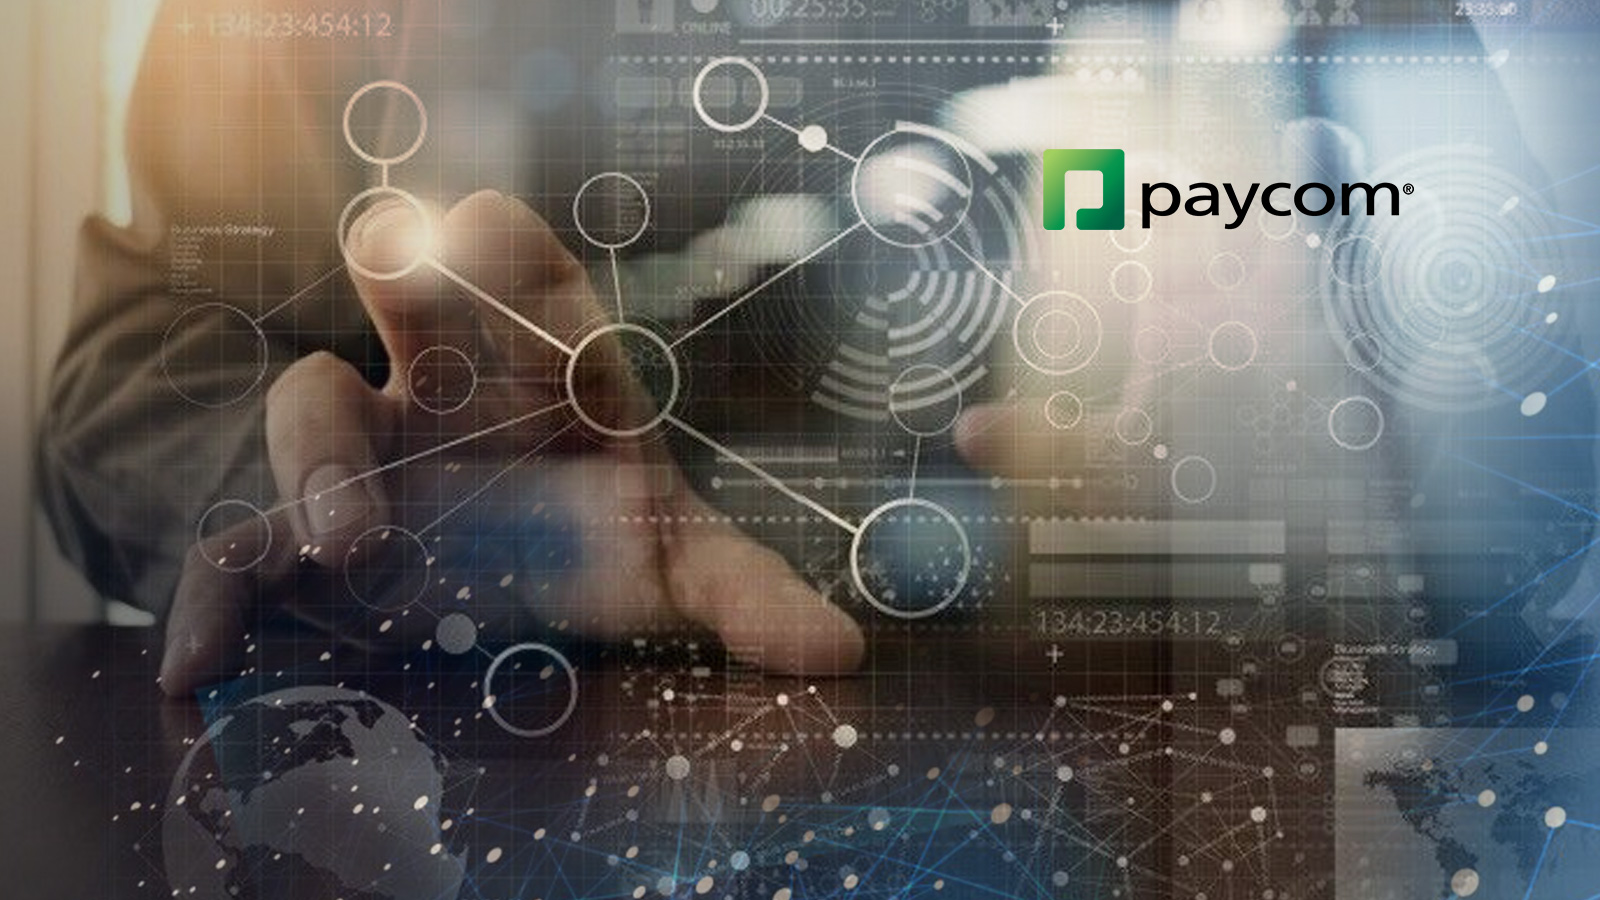 Paycom Launches Machine Learning Technology with Employment